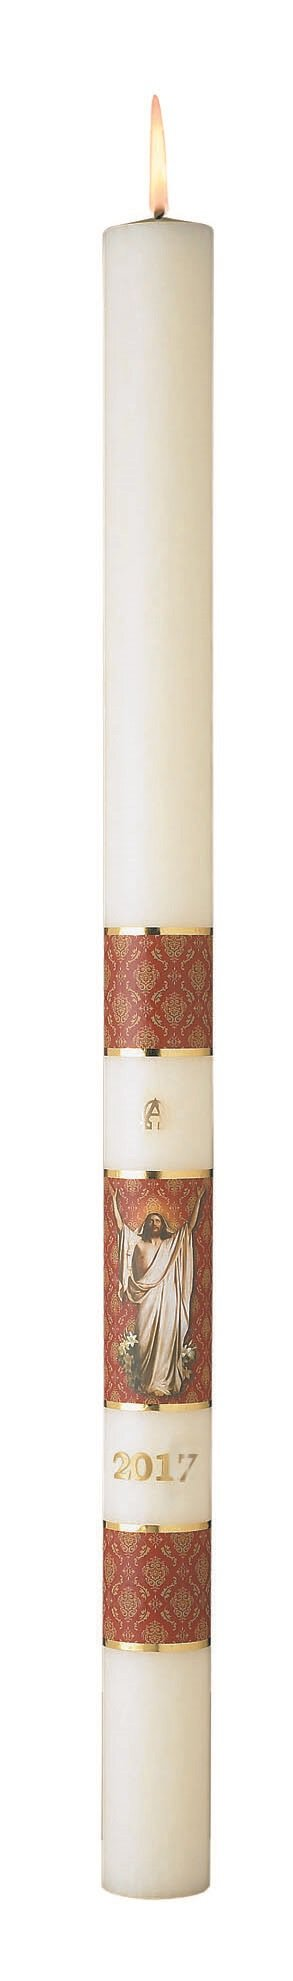 No 4 Special Risen Christ Paschal Candle